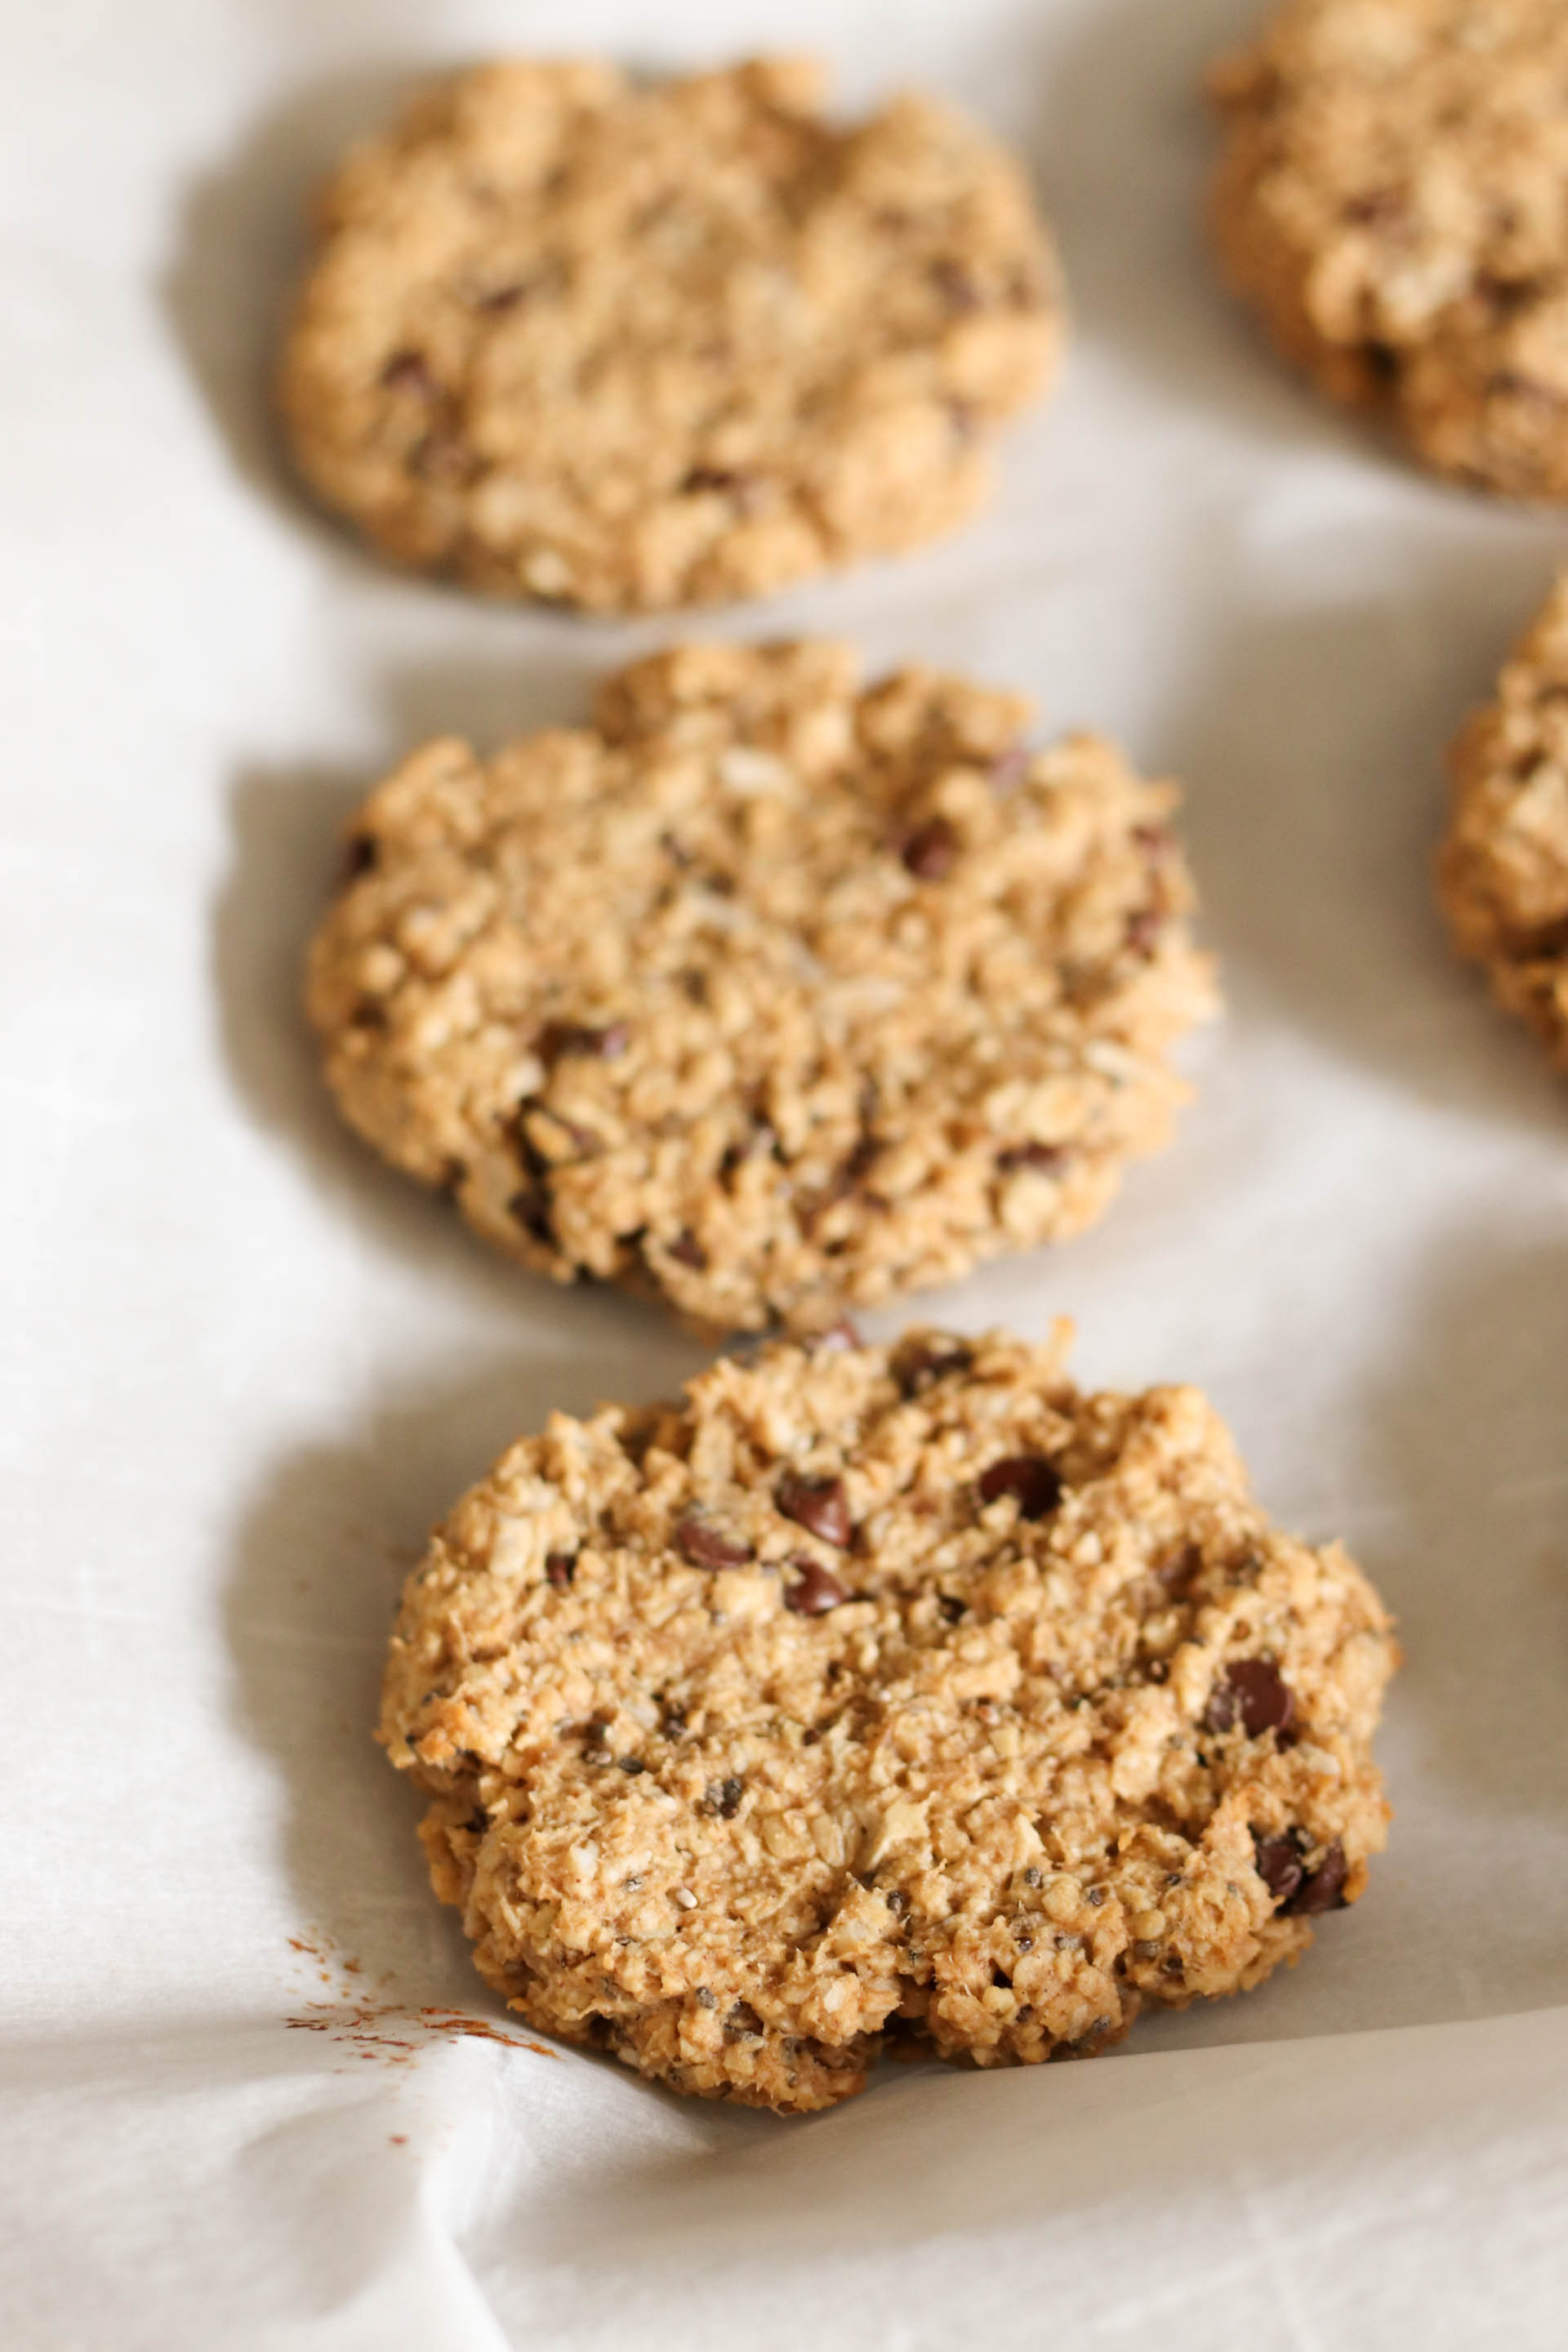 Close up of a Breakfast Cookie on parchment paper